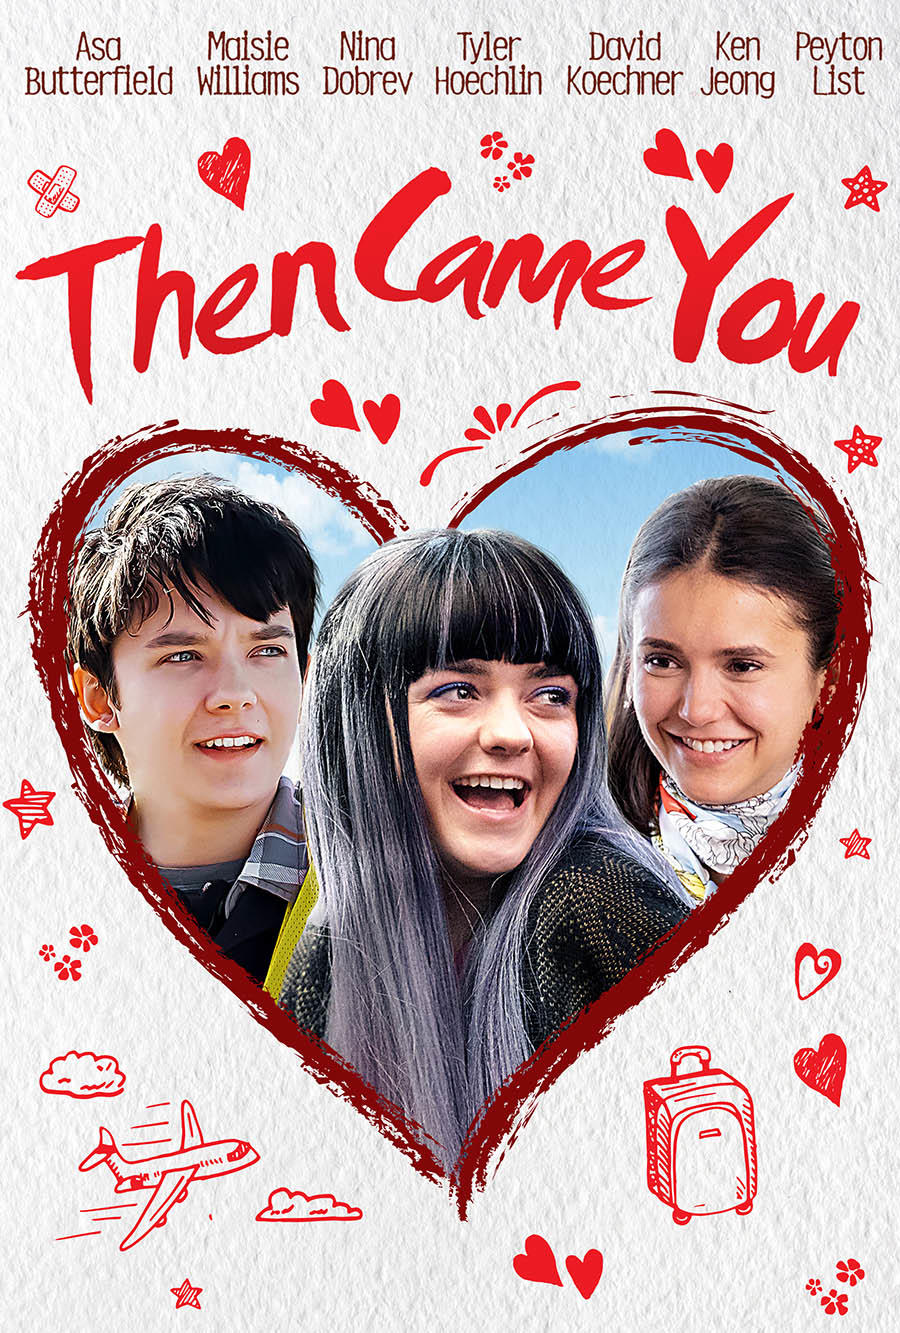 Then Came You poster art